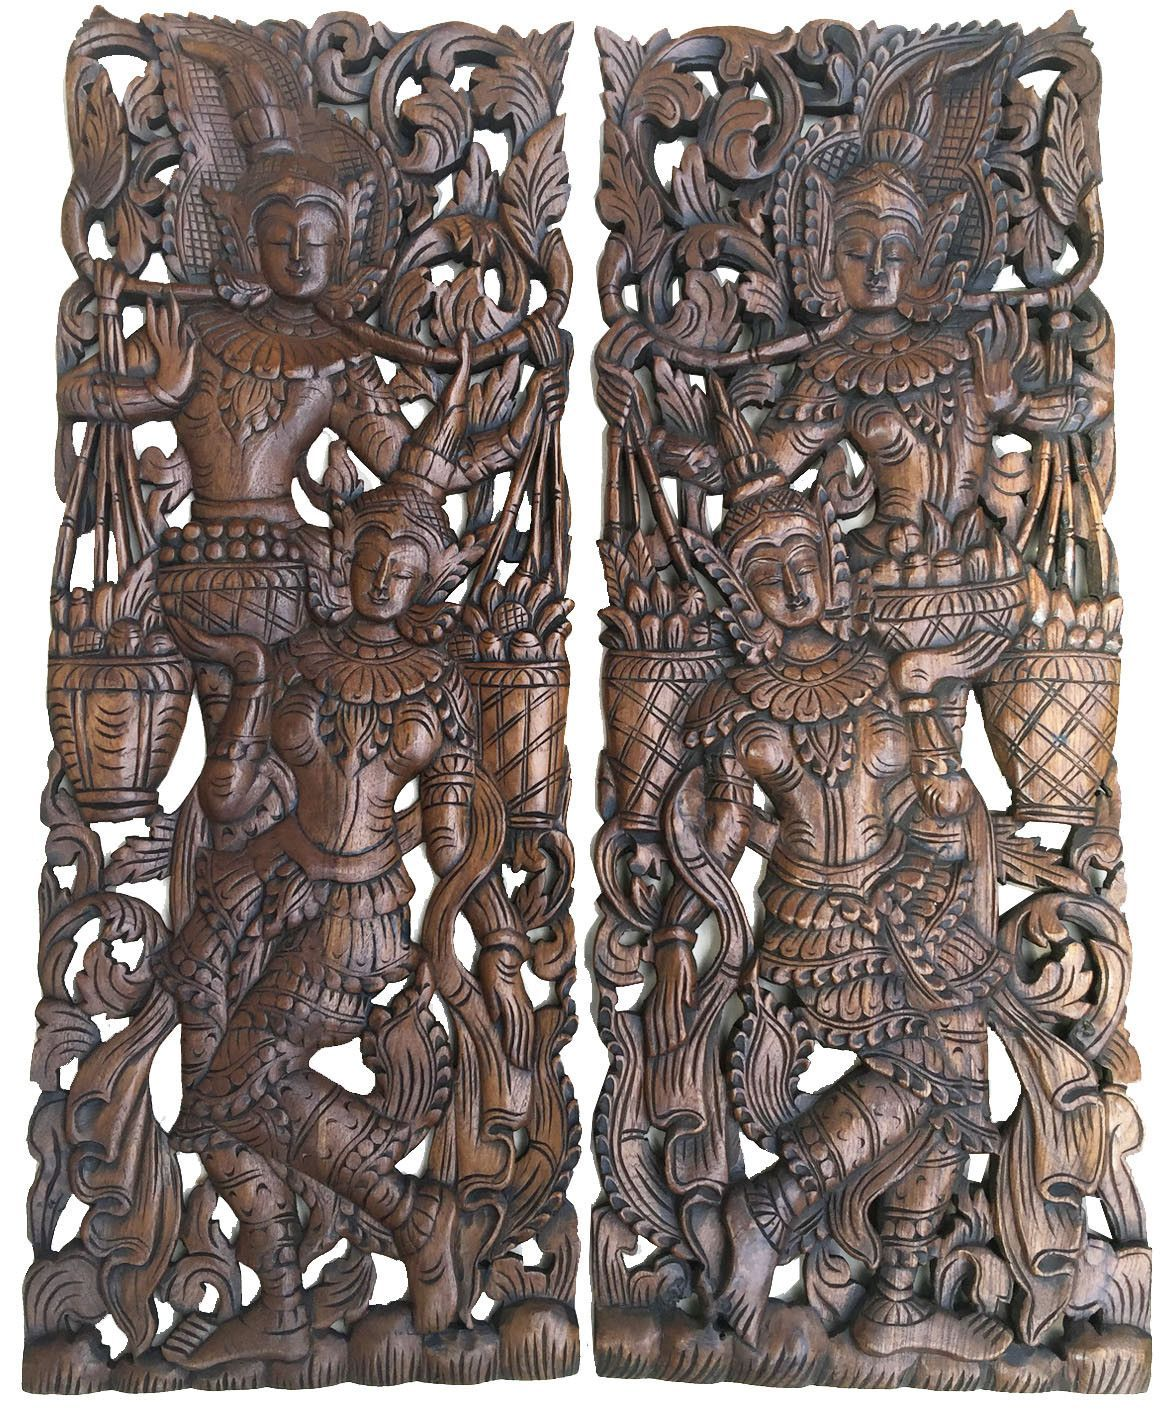 Traditional Thai Figure Carved Wood Wall Decor Panels Asian Home Carving Sculpture